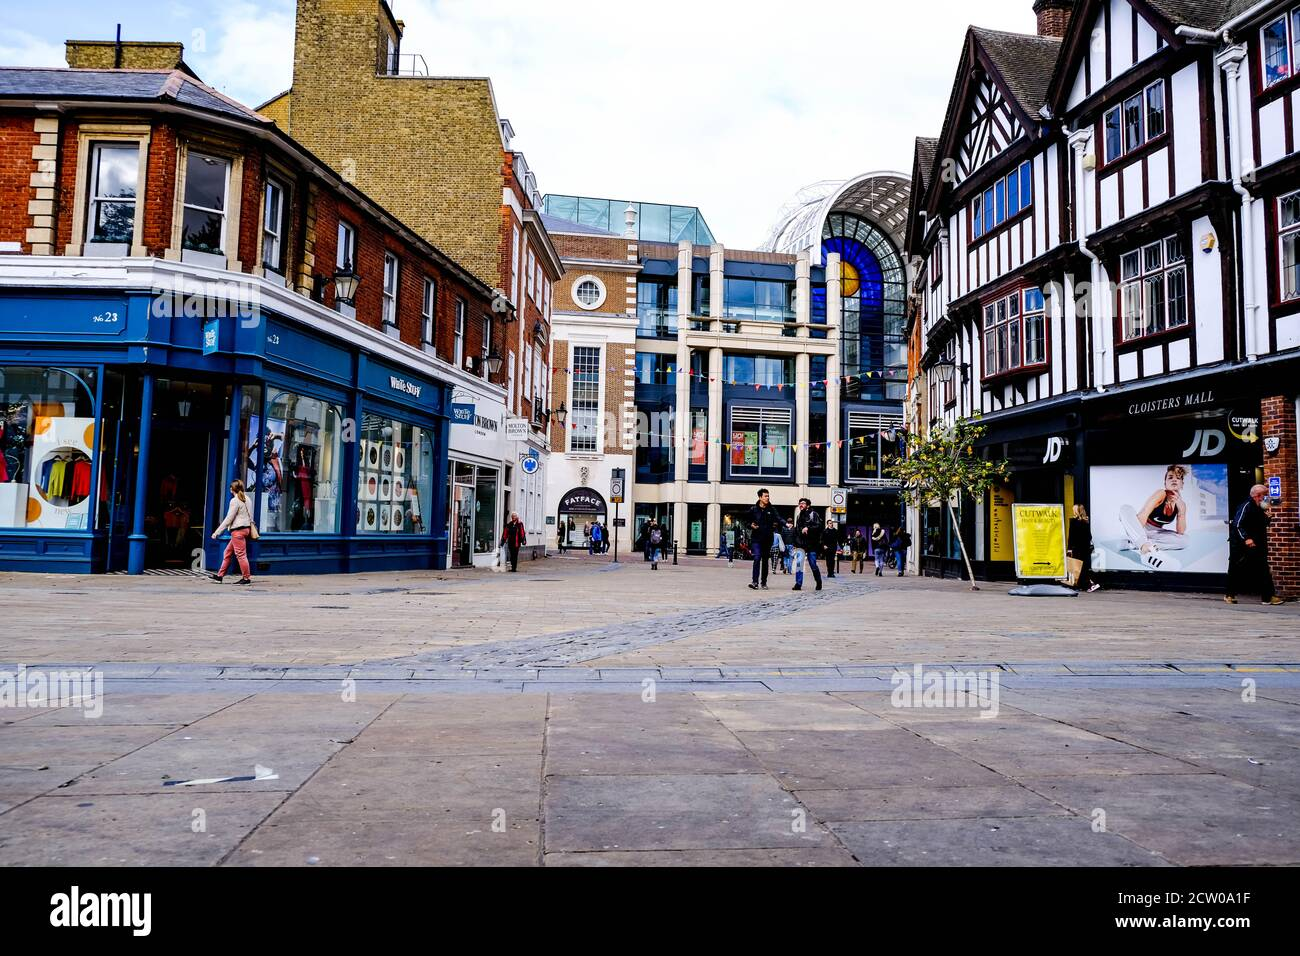 Deserted Empty High Street During COvid-19 As people Social Distancing And Staying At Home Stock Photo